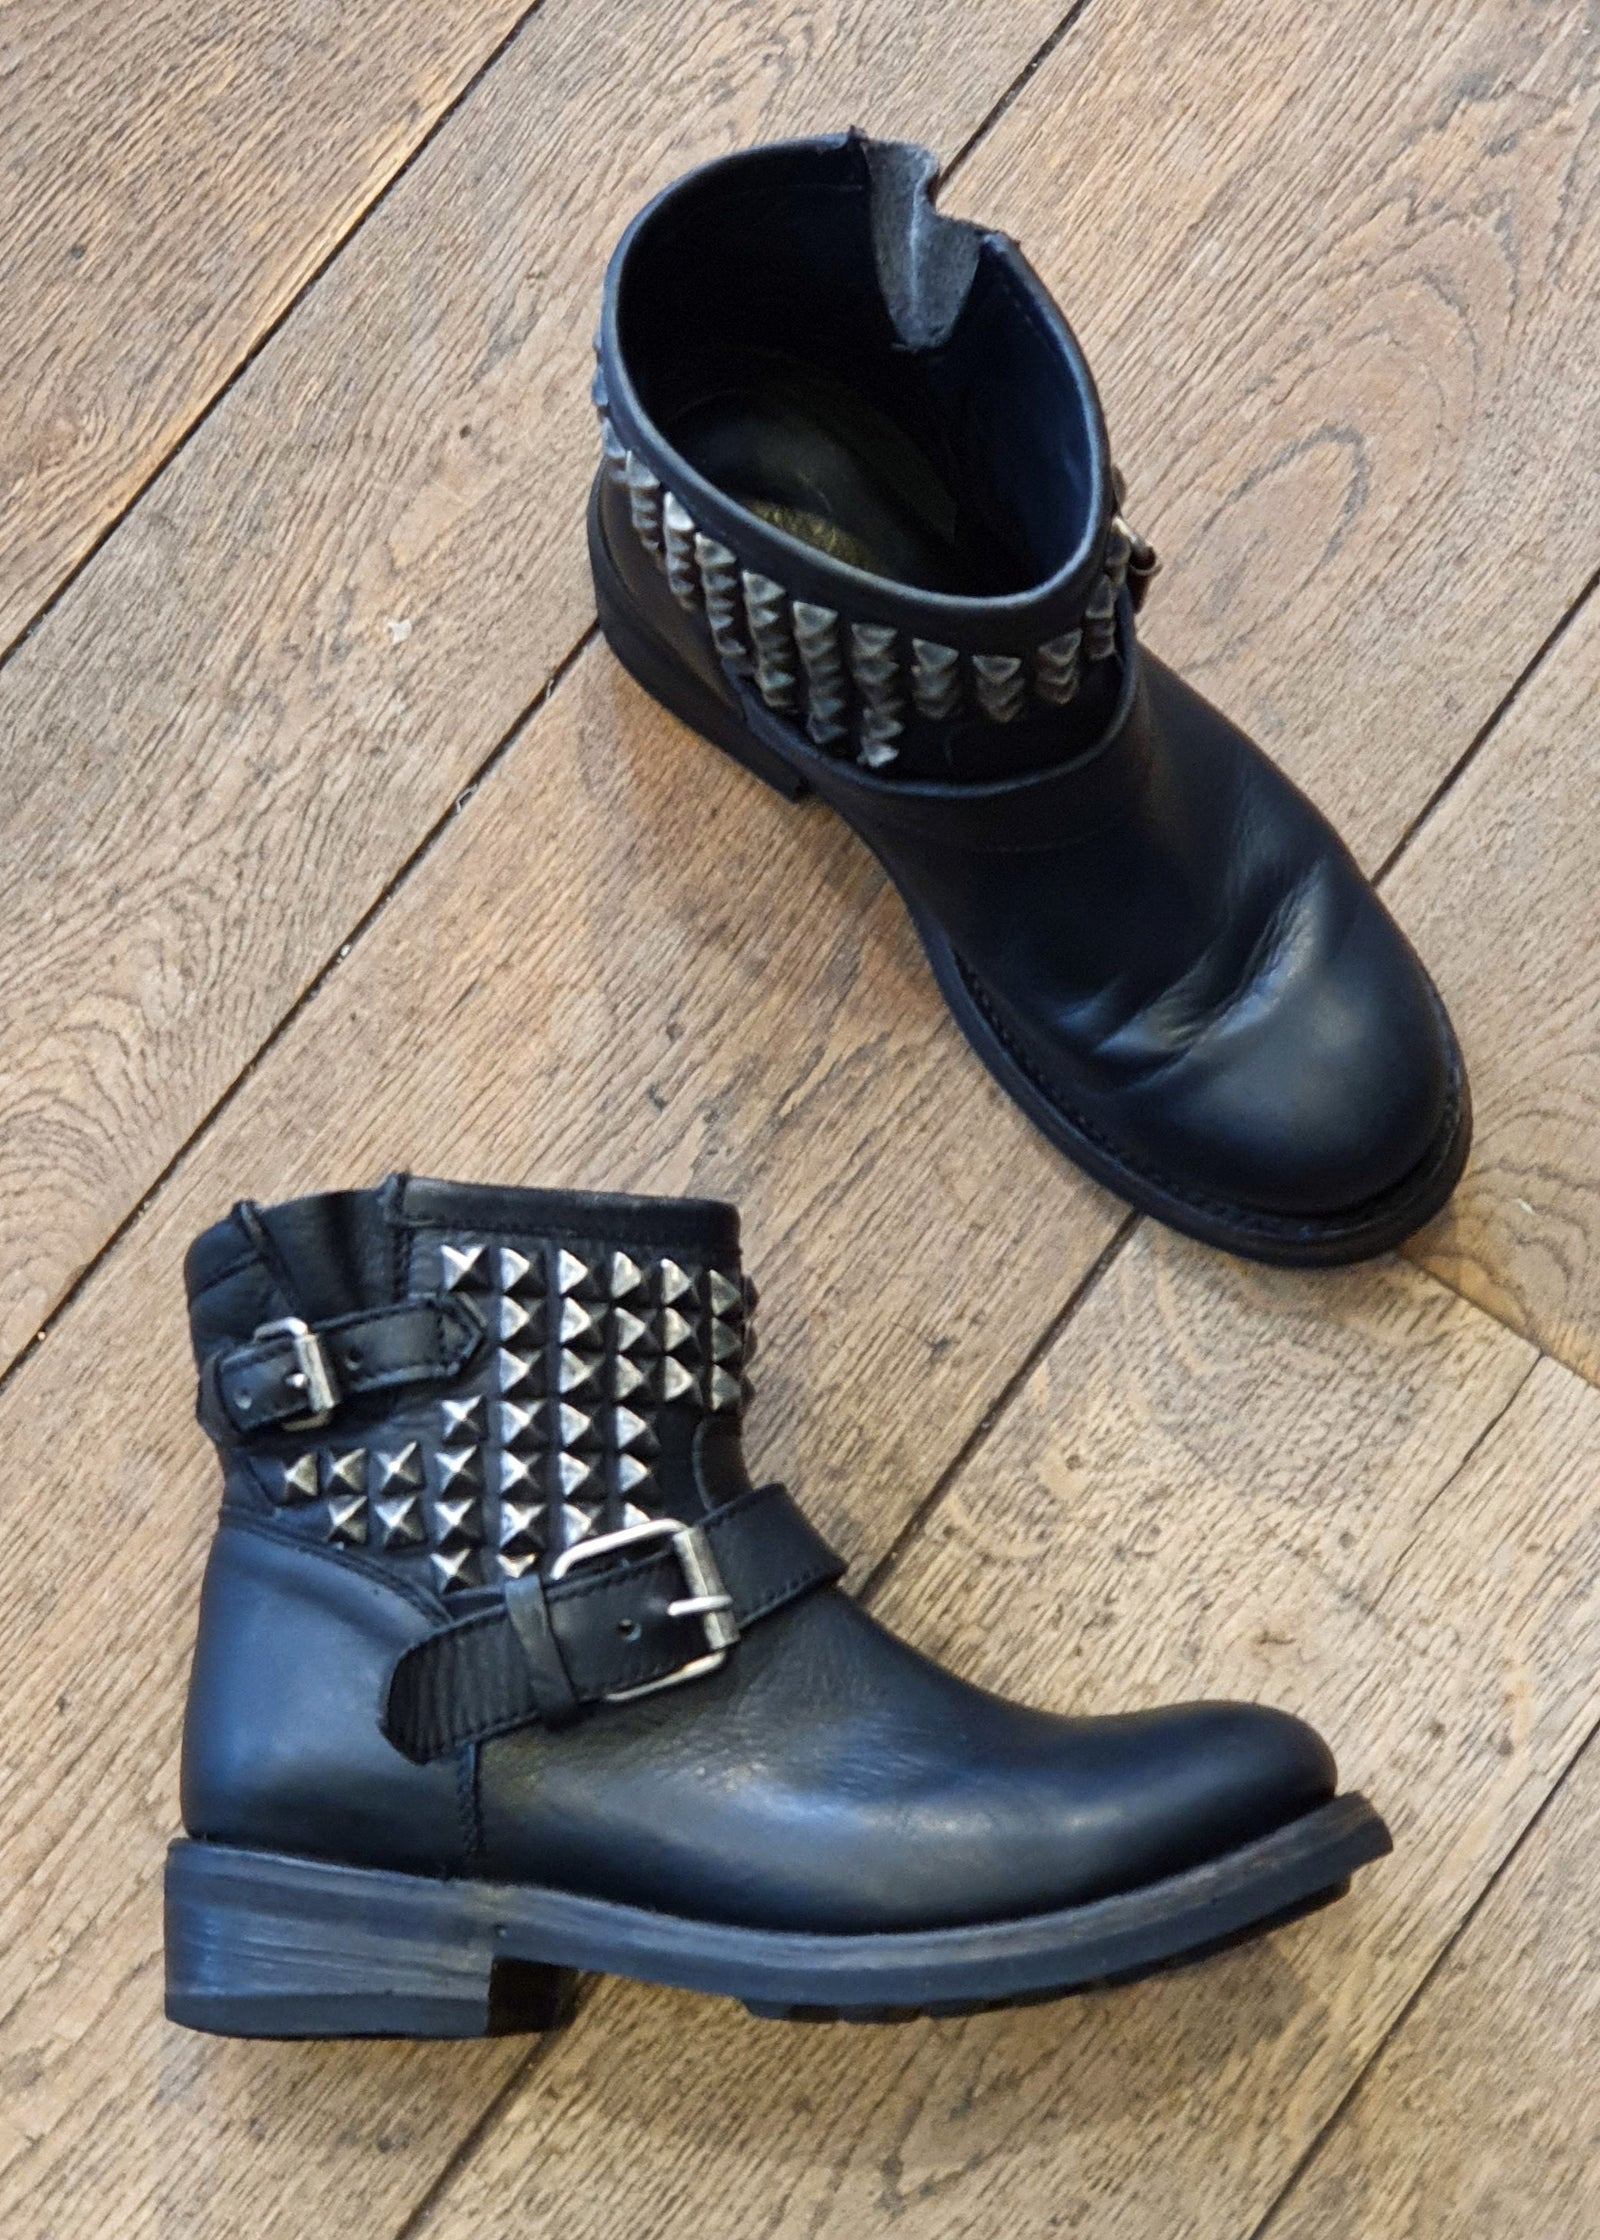 PRELOVED | PREWORN<br> 'ASH'<br>Womens Short Studded Biker Boots<br> Size 5 UK